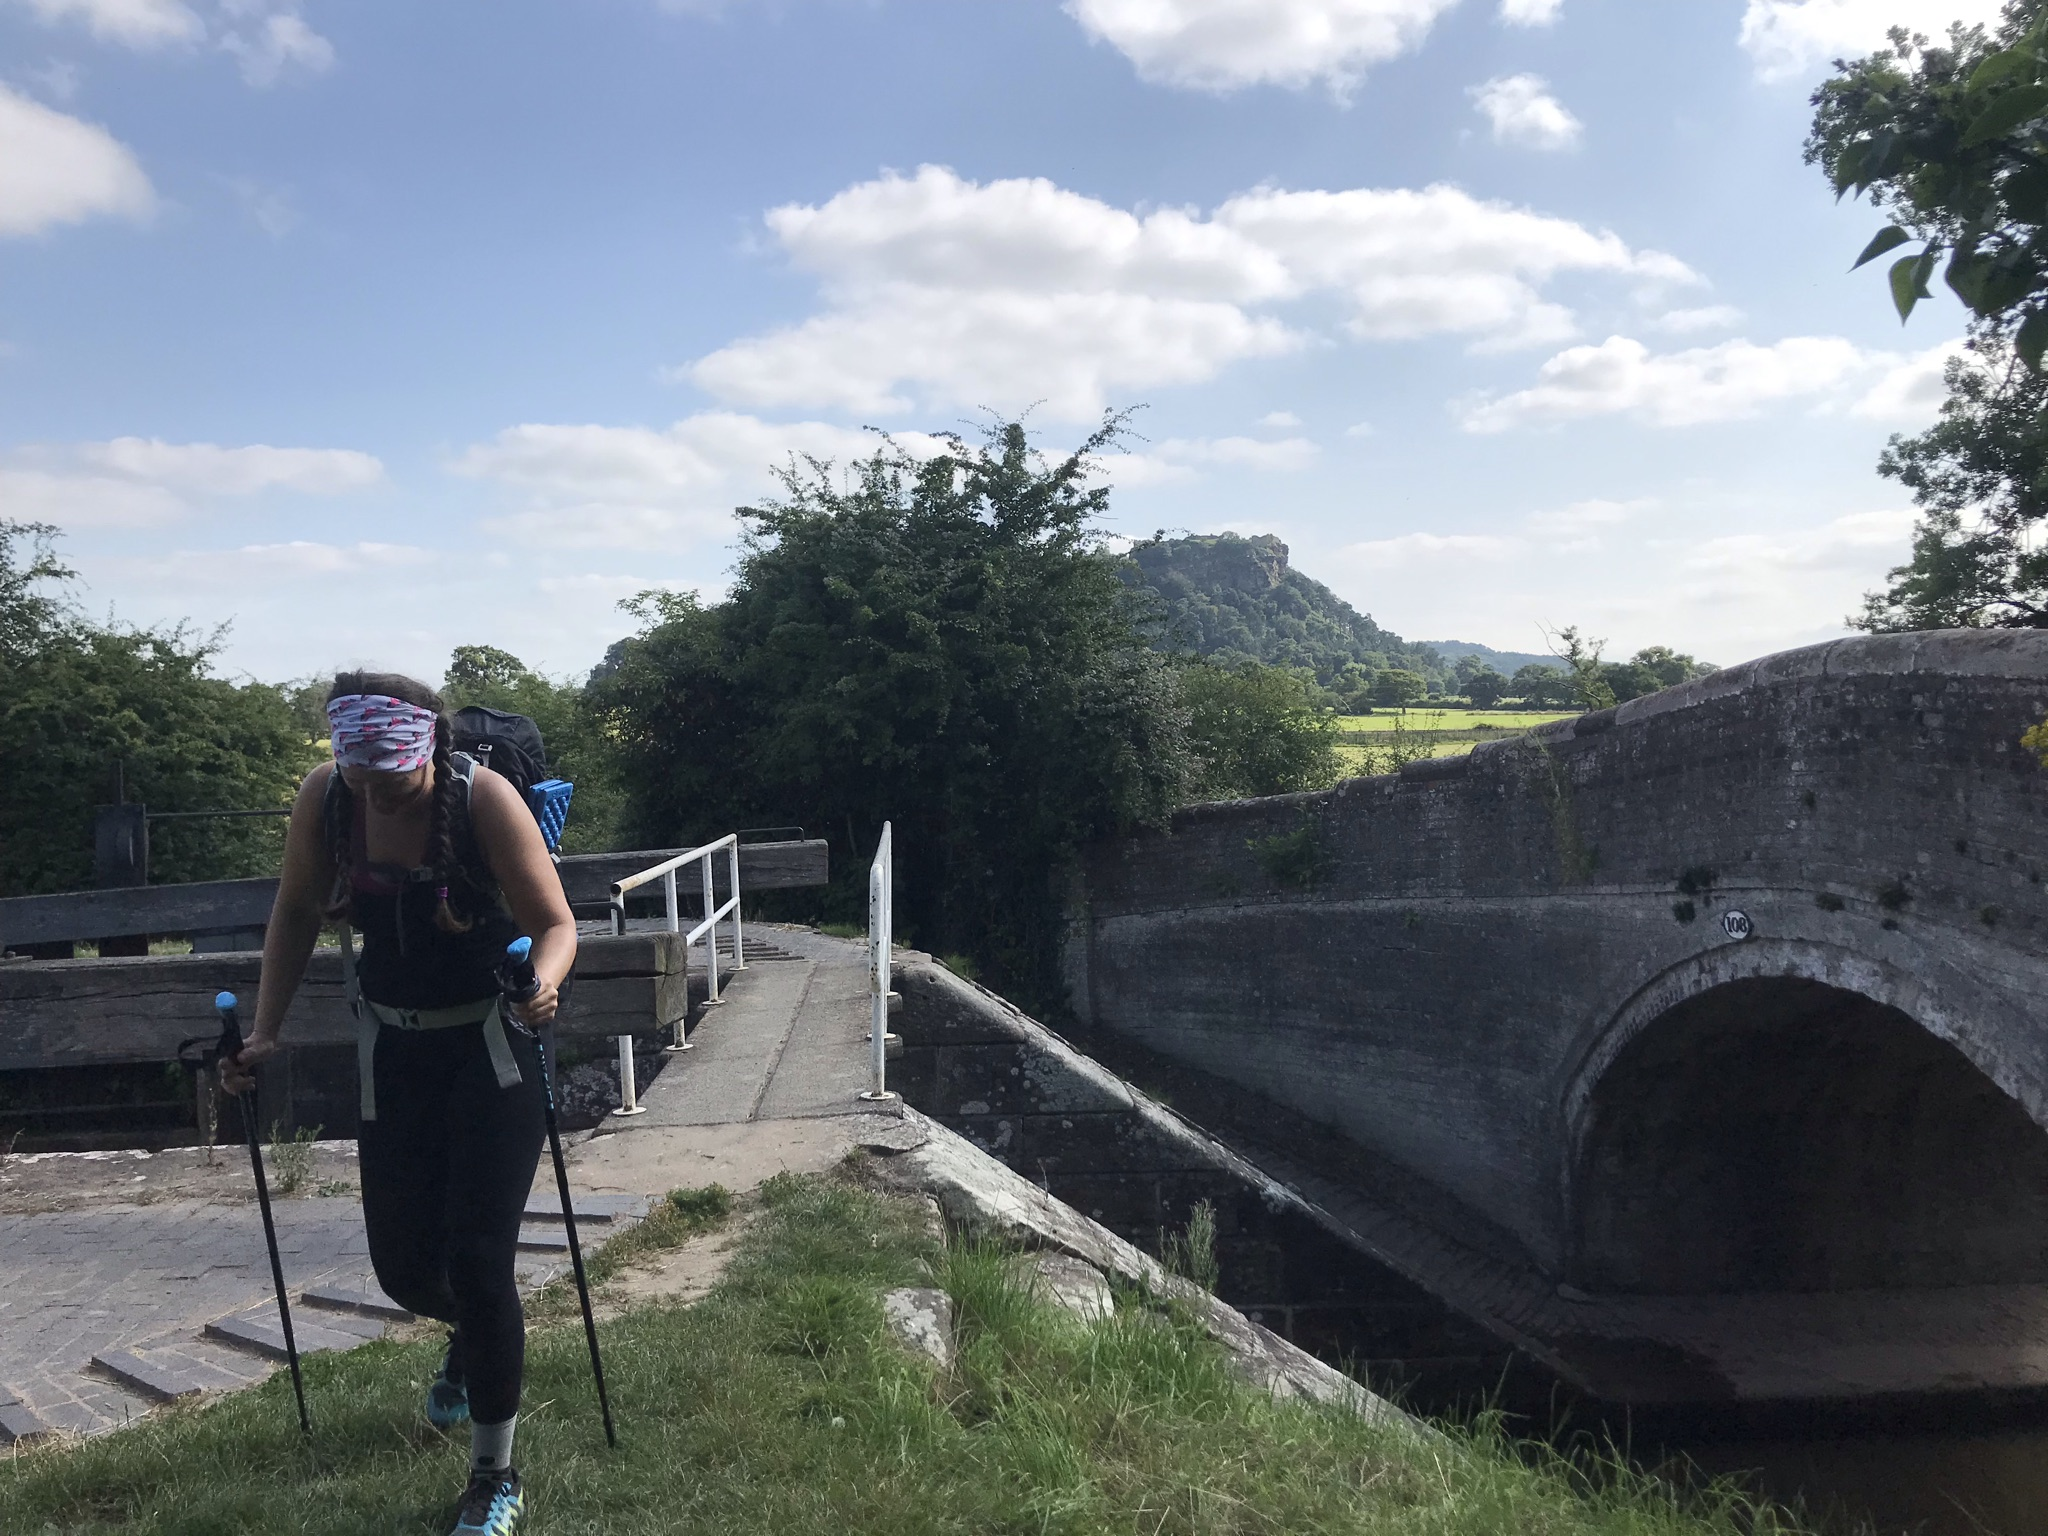 Sarah, walking with poles crosses a narrow bridge over a lock. Beeston Castle is in the distance